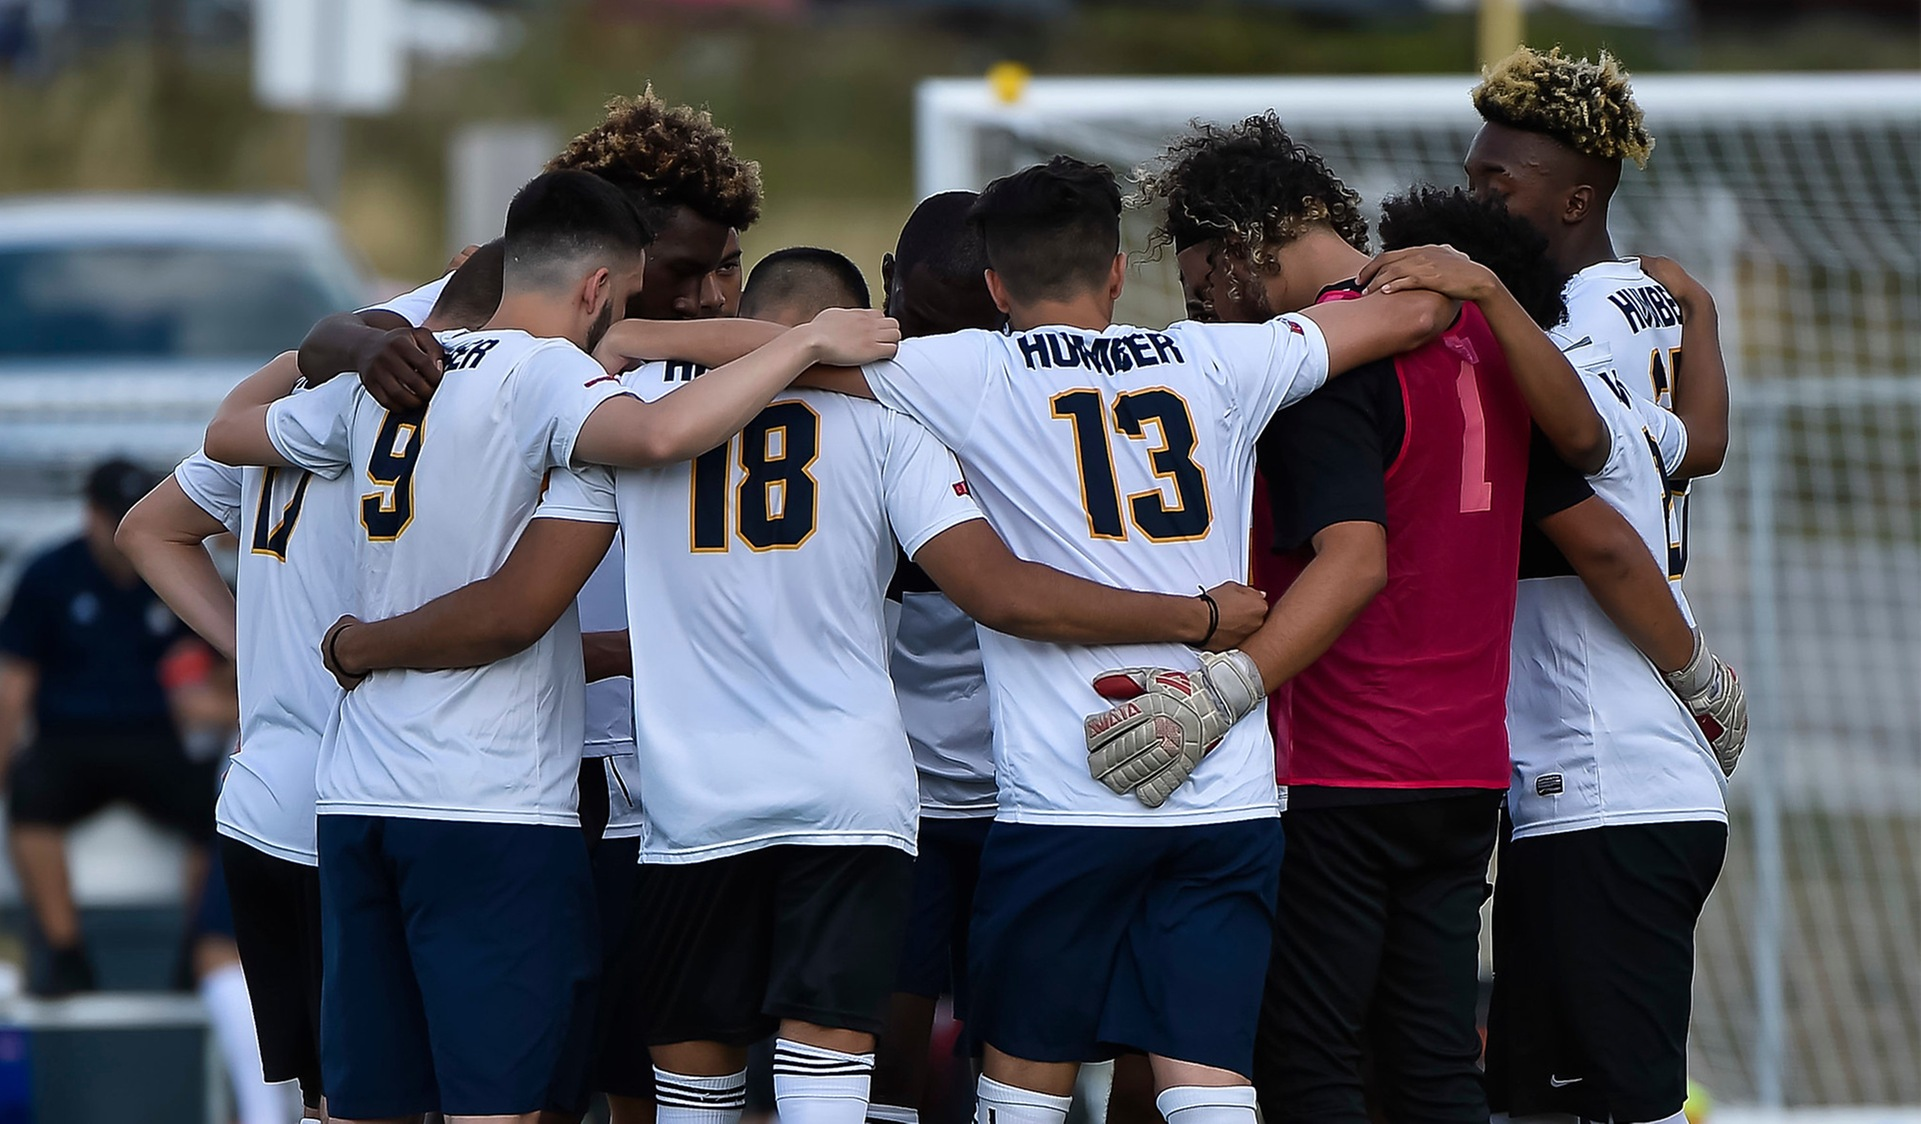 Allen Nets Five as Men's Soccer Rolls By Niagara, 6-0